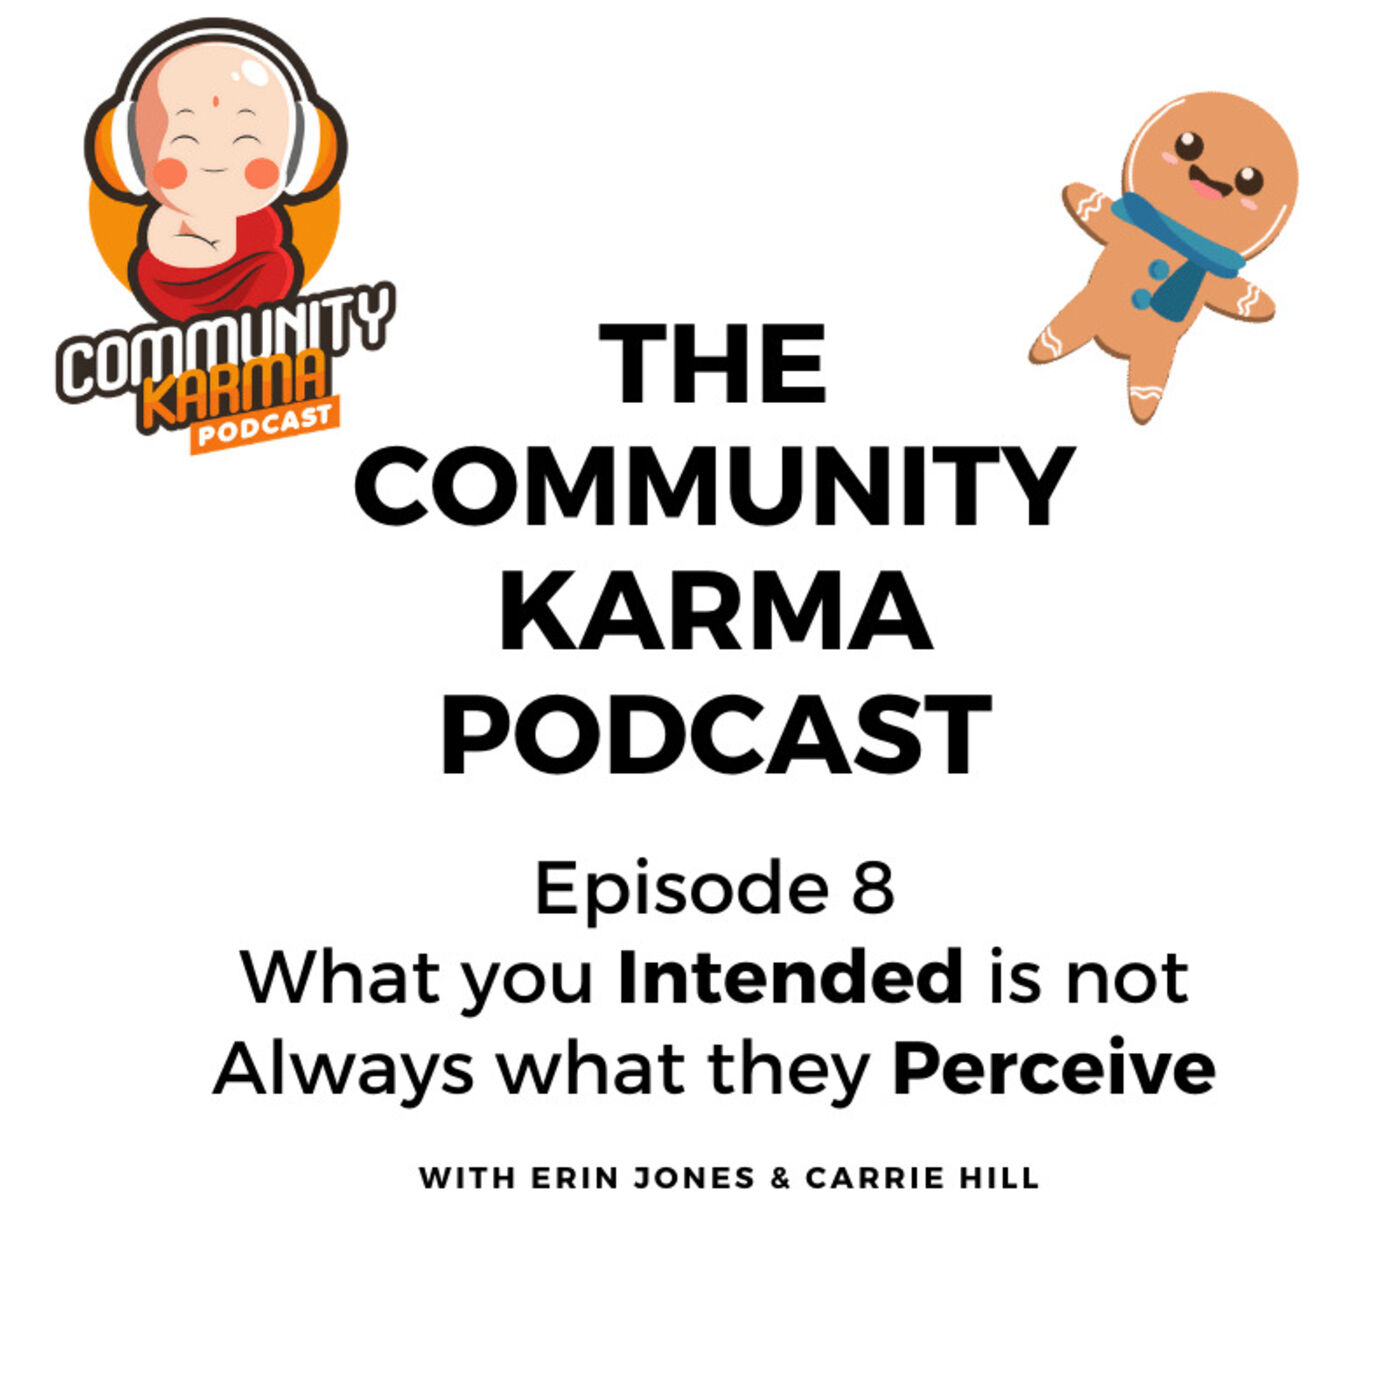 Episode 8- What you Intended is not Always what they Perceive